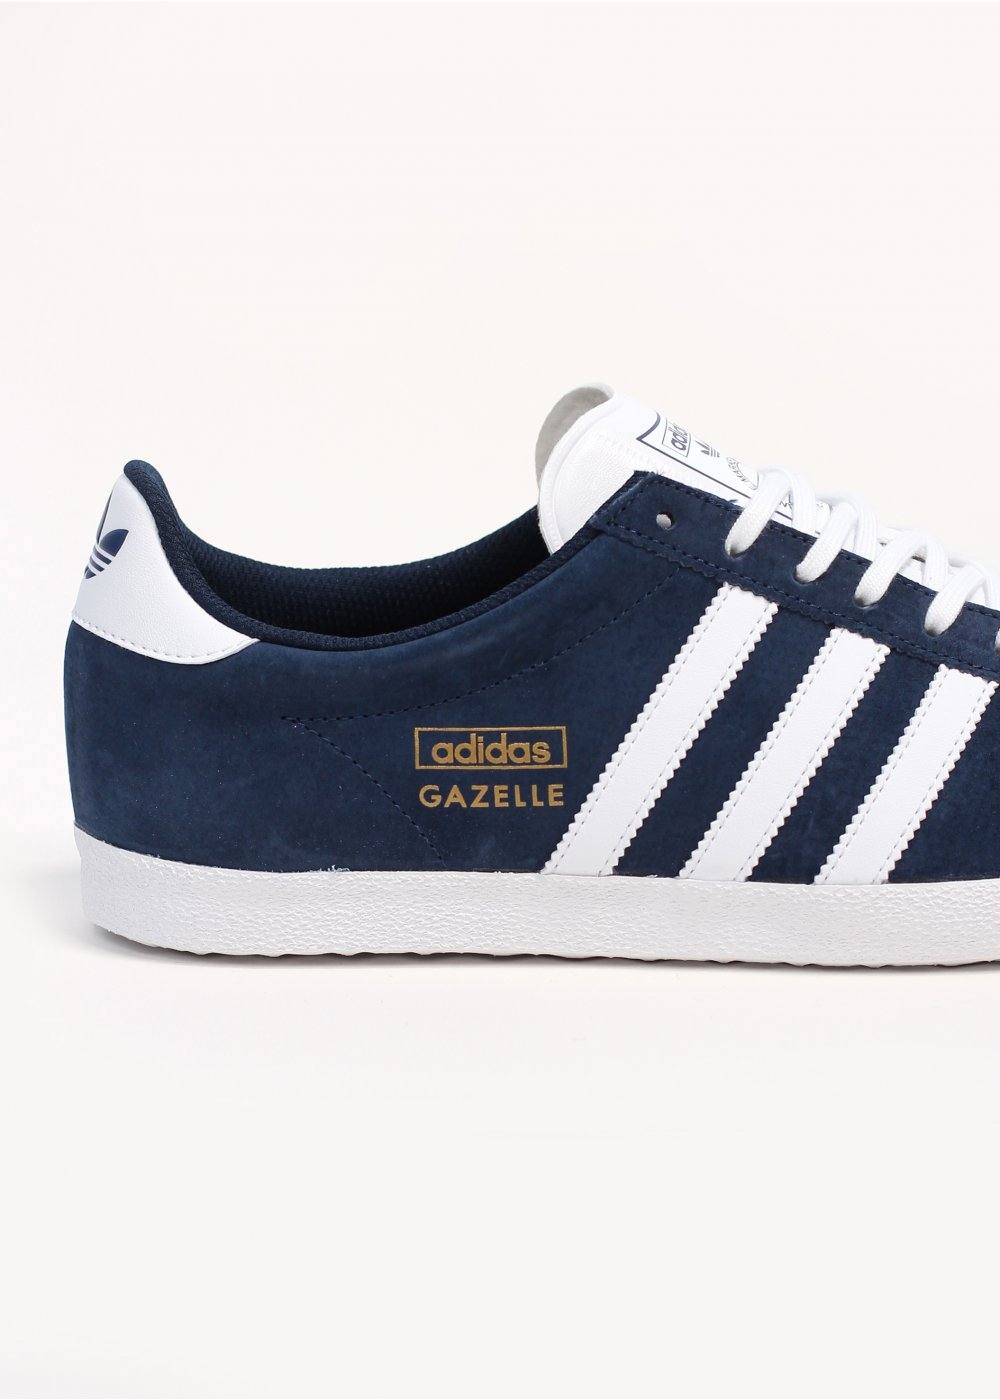 Adidas Originals Originals Top Ten Low Sneaker In Black: Adidas Originals Gazelle OG Trainers